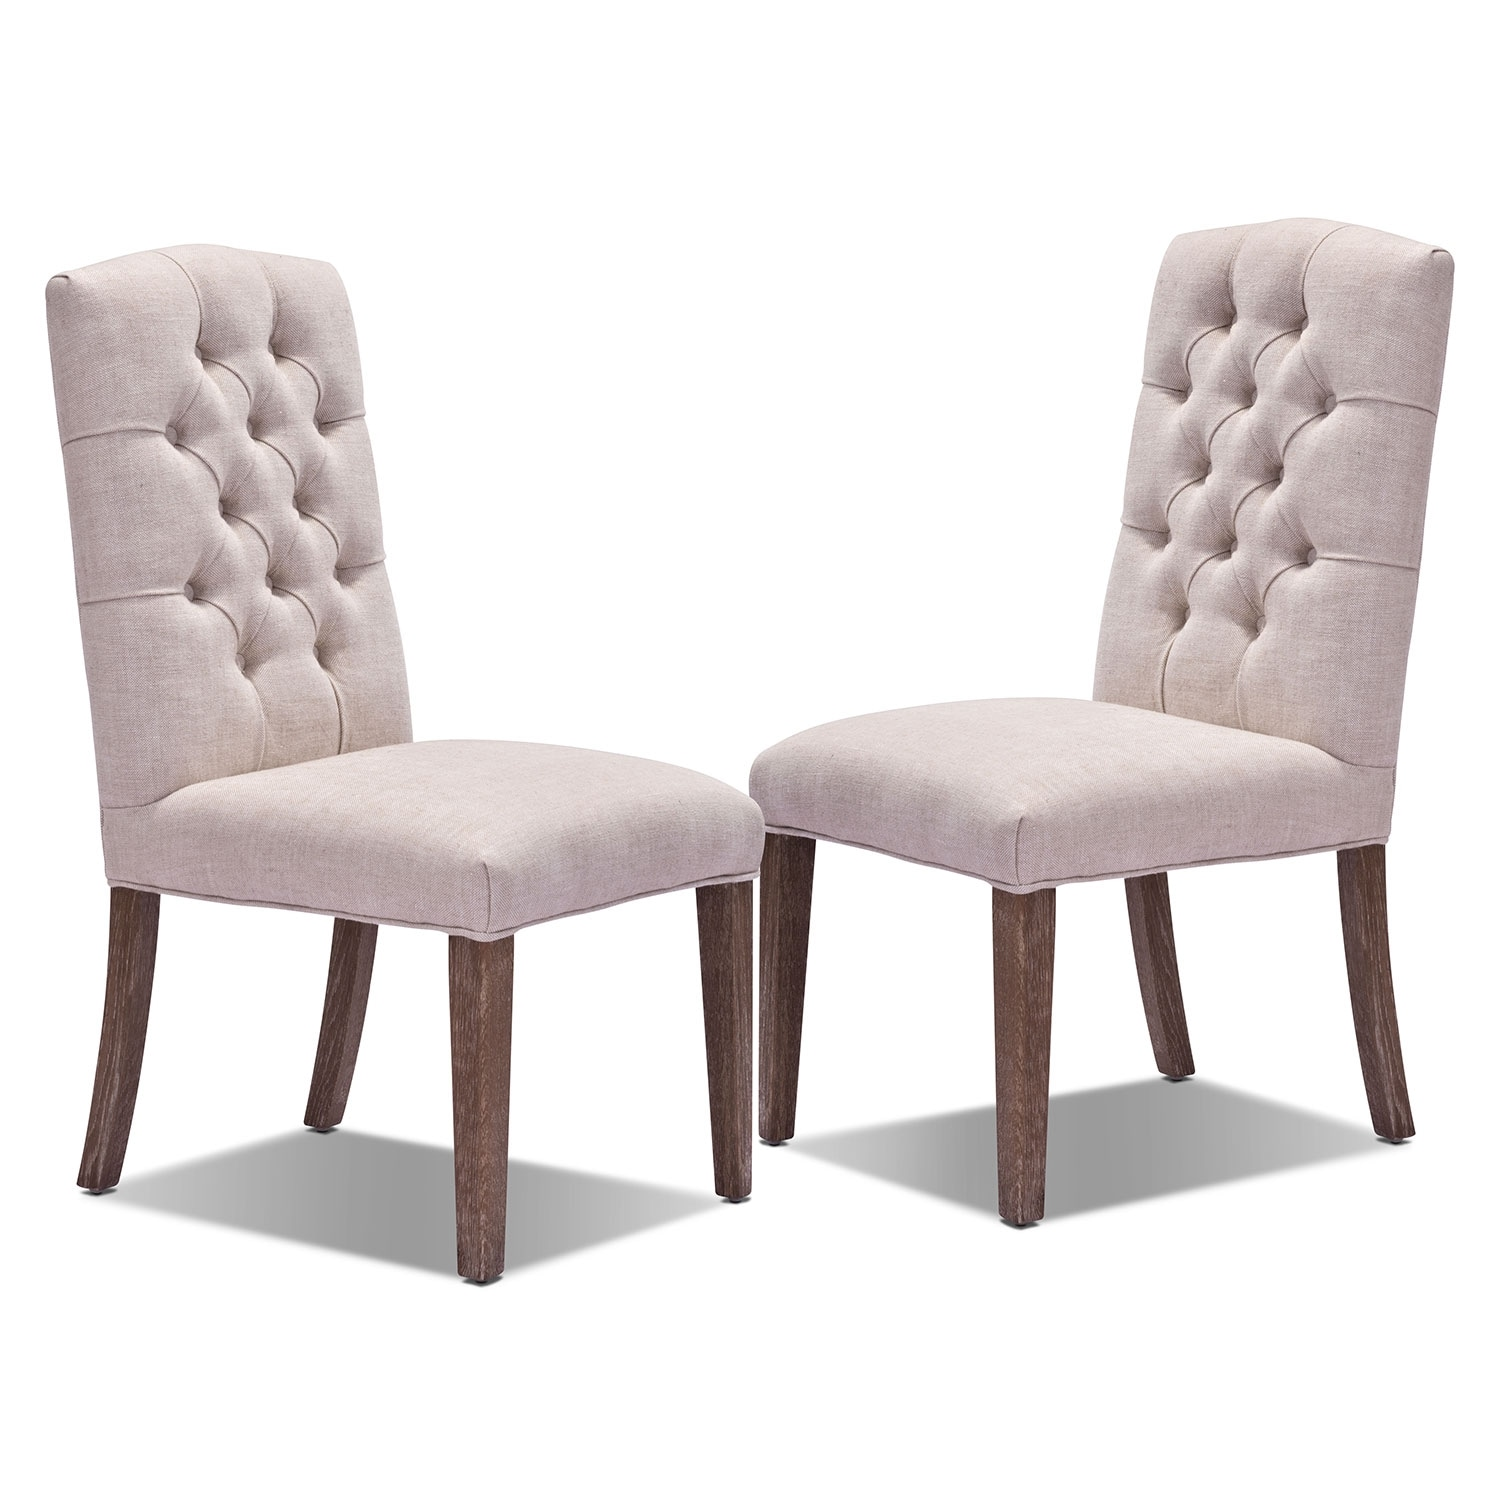 Dining room chairs seating american signature furniture for Breakfast room chairs